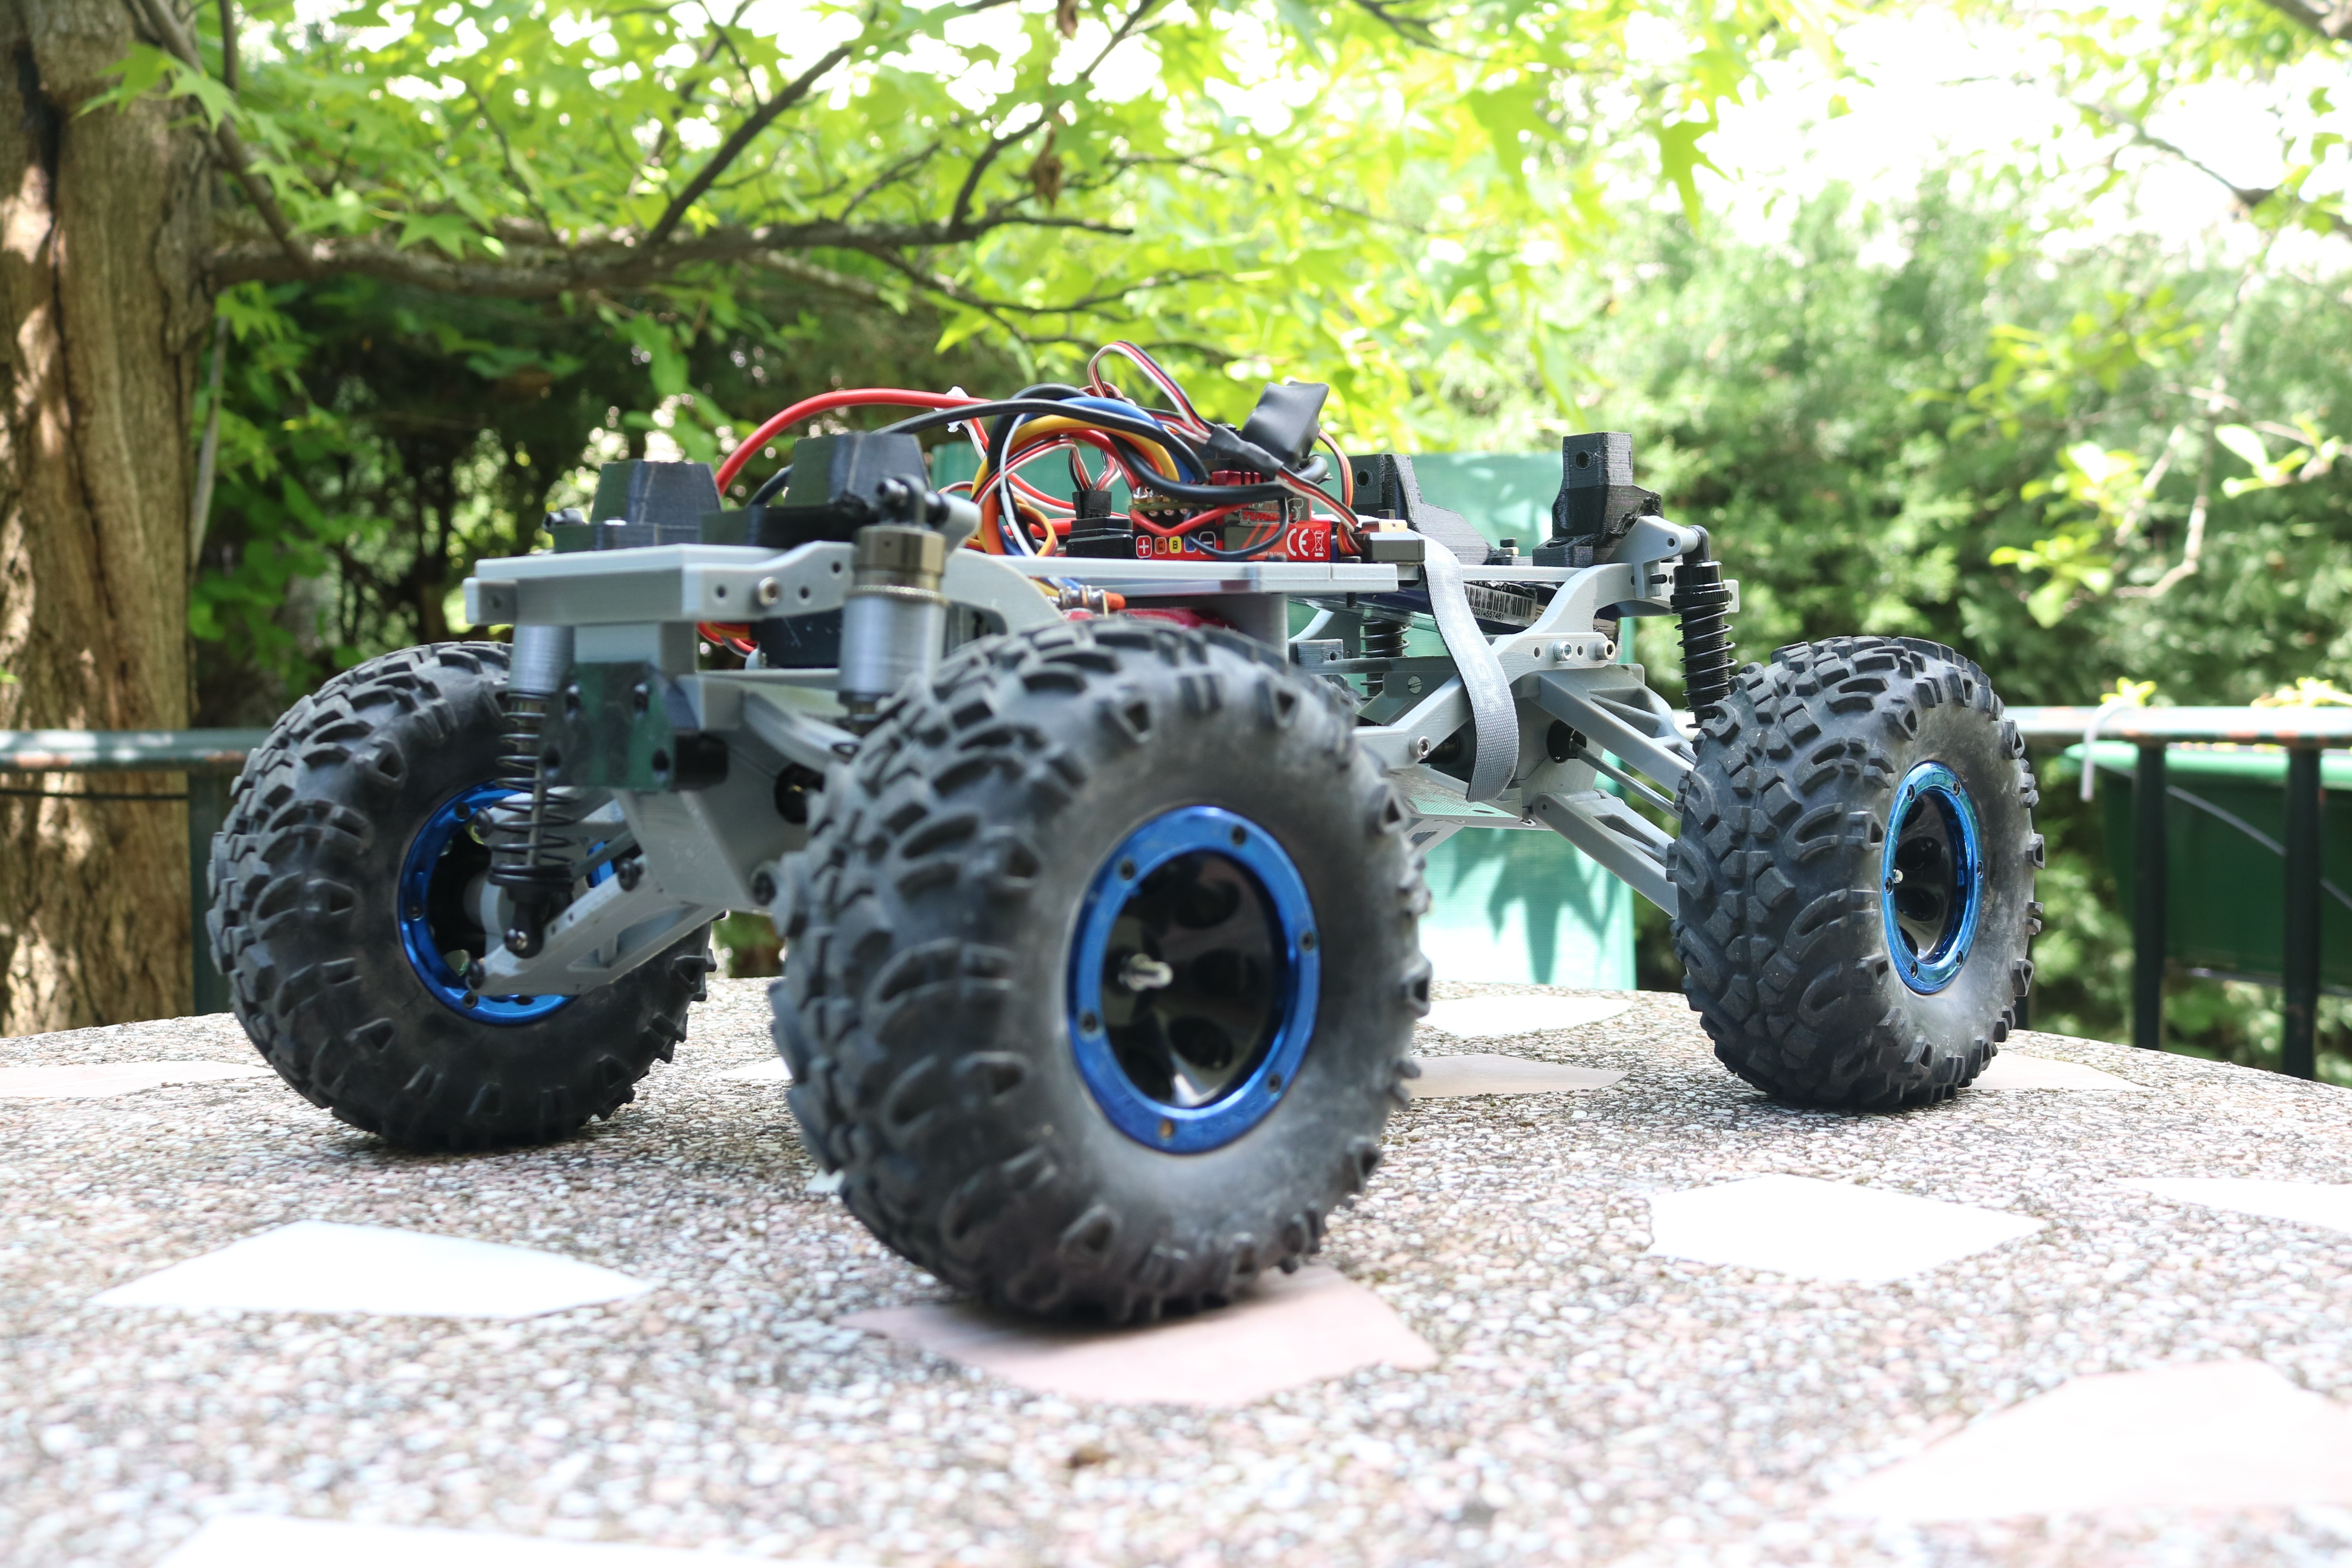 IMG_3668.JPG Download STL file MyRCCar 1/10 MTC Chassis Updated. Customizable chassis for Monster Truck, Crawler or Scale RC Car • 3D printer model, dlb5